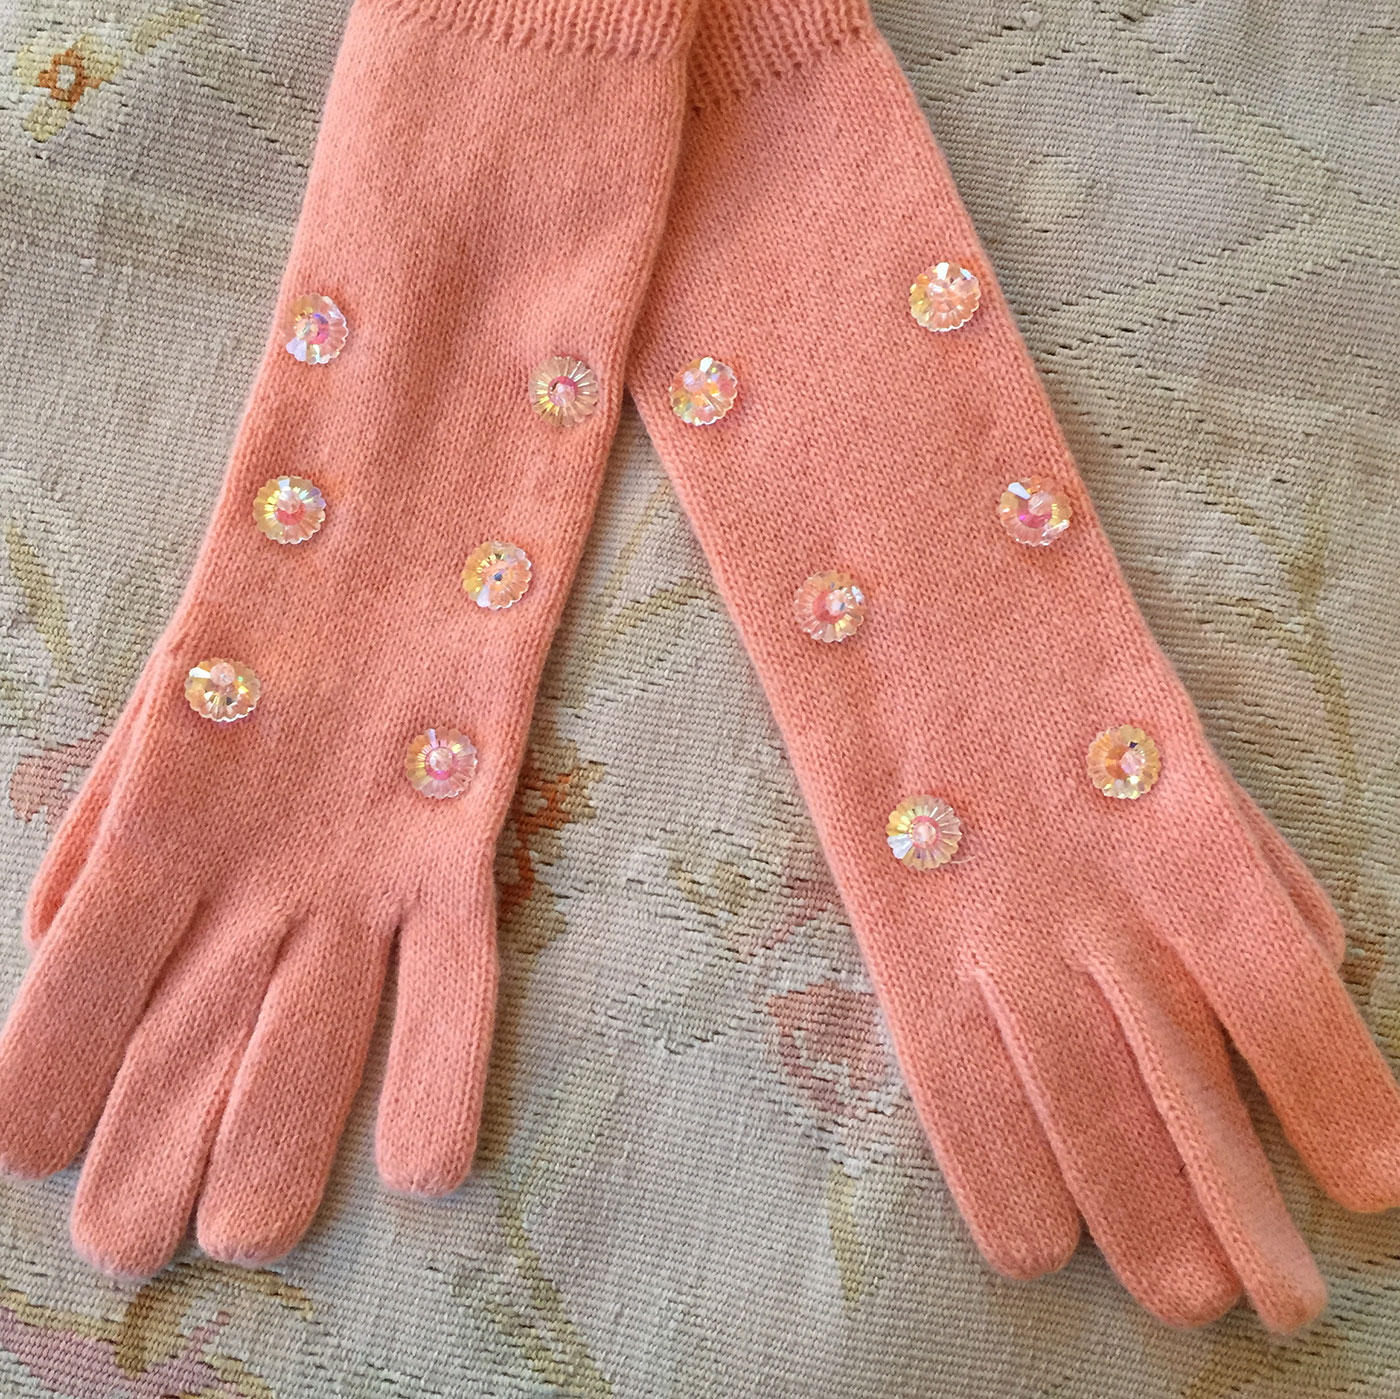 Geoffrey Beene spring wool gloves with early blooms of frost across the top